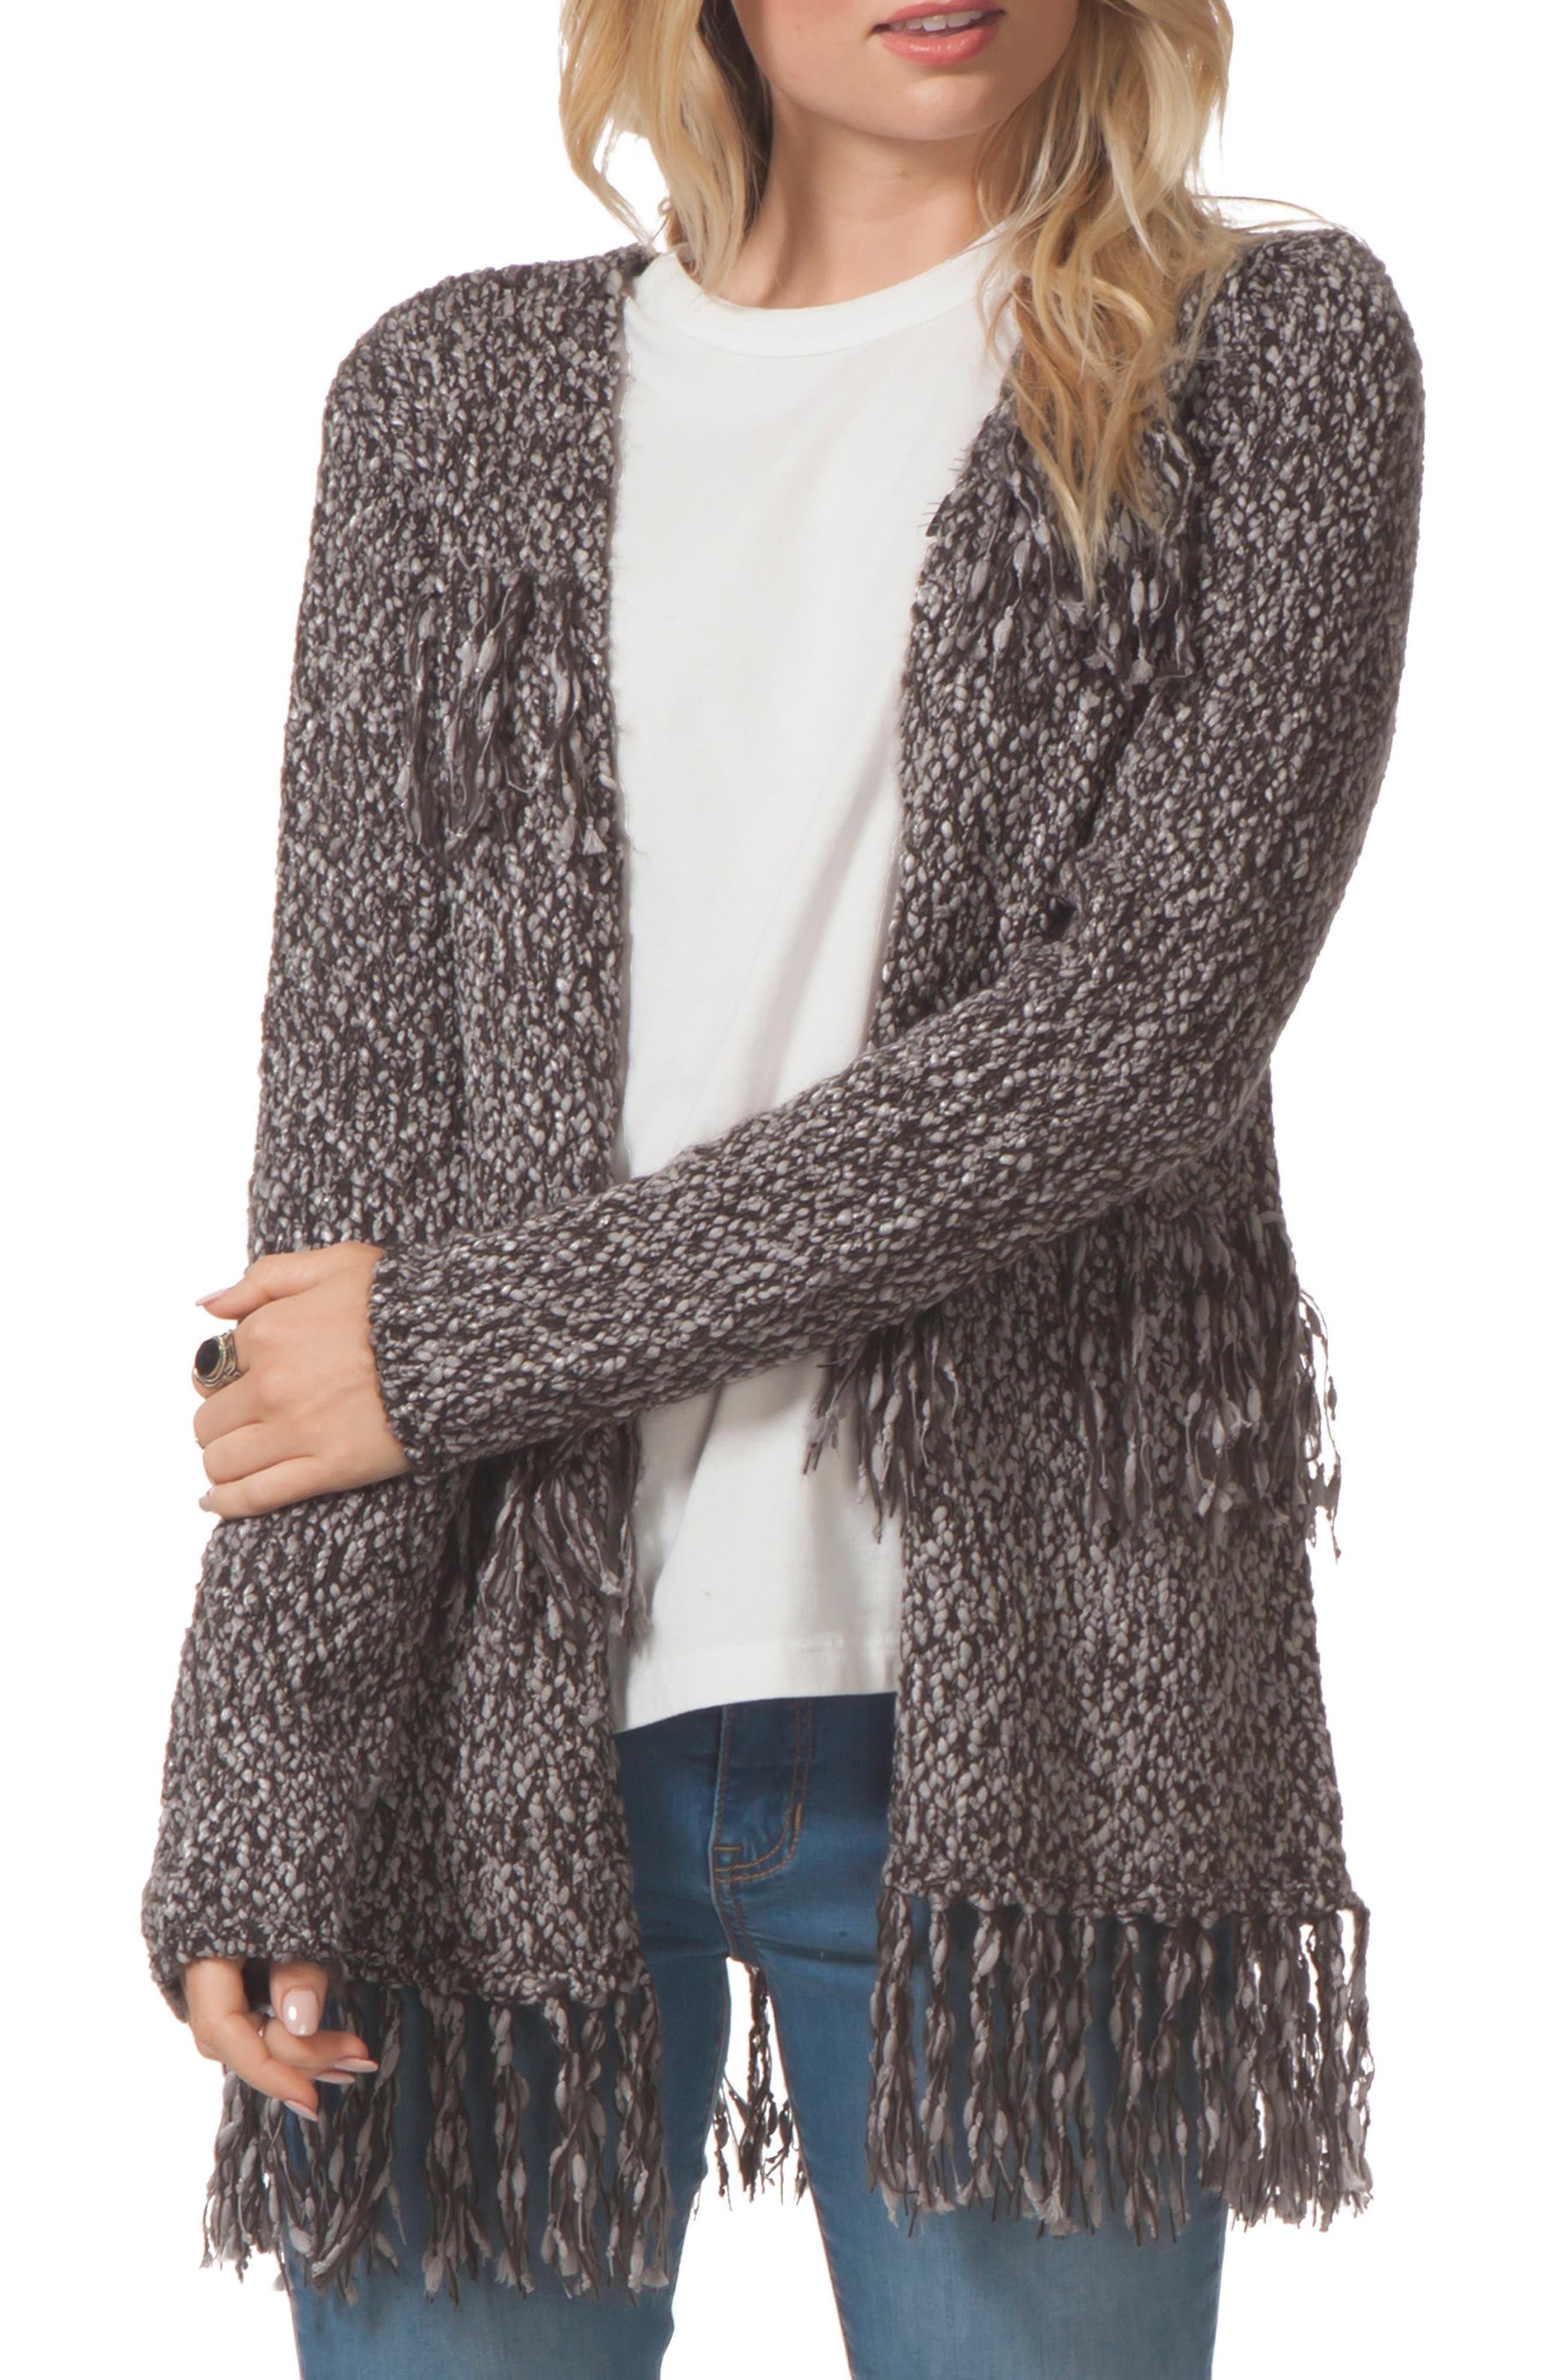 Heirloom Sweater Jacket,                         Main,                         color, Charcoal